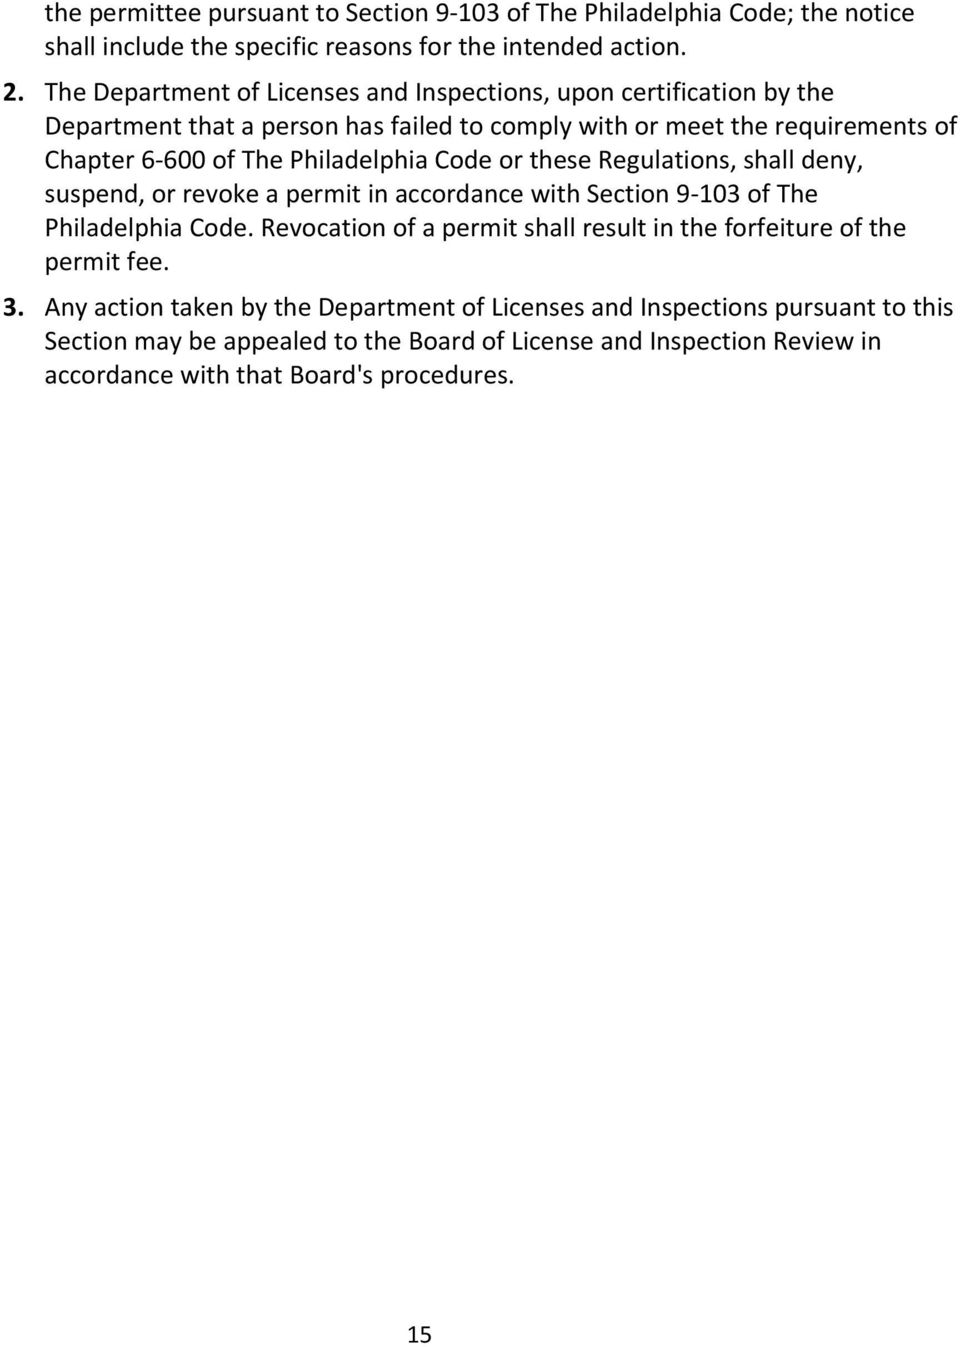 Philadelphia Code or these Regulations, shall deny, suspend, or revoke a permit in accordance with Section 9 103 of The Philadelphia Code.